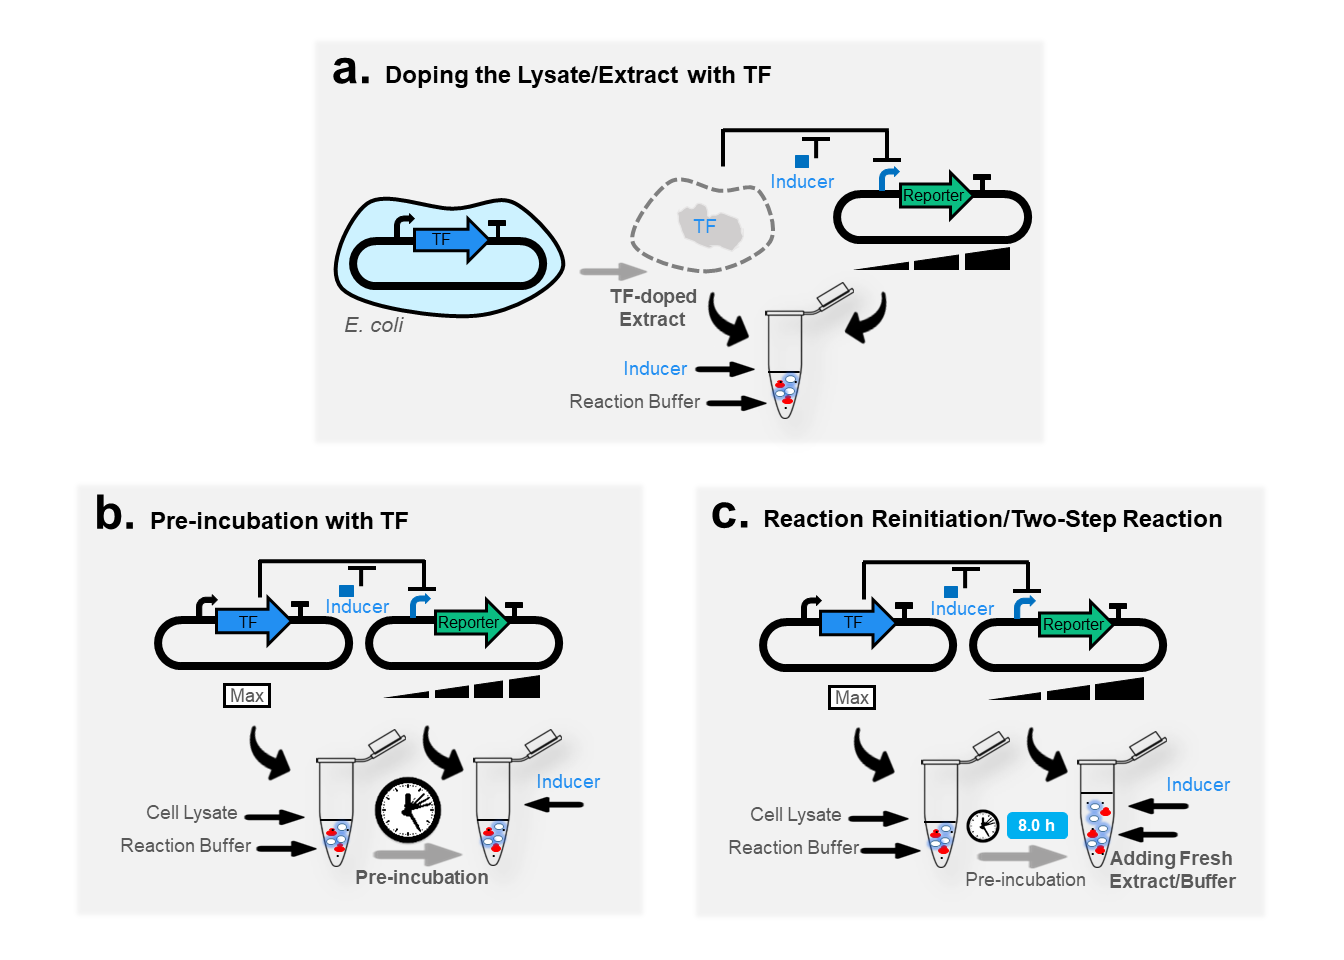 Optimization strategies applied to improve the fold change of a cell-free biosensor functioning through a transcriptional repressor. (a)  Doping,  (b)  Preincubation, and  (c)  reinitiation of (two-step) reaction. Adapted from  Pandi et al. 2019,  ACS synthetic biology  .